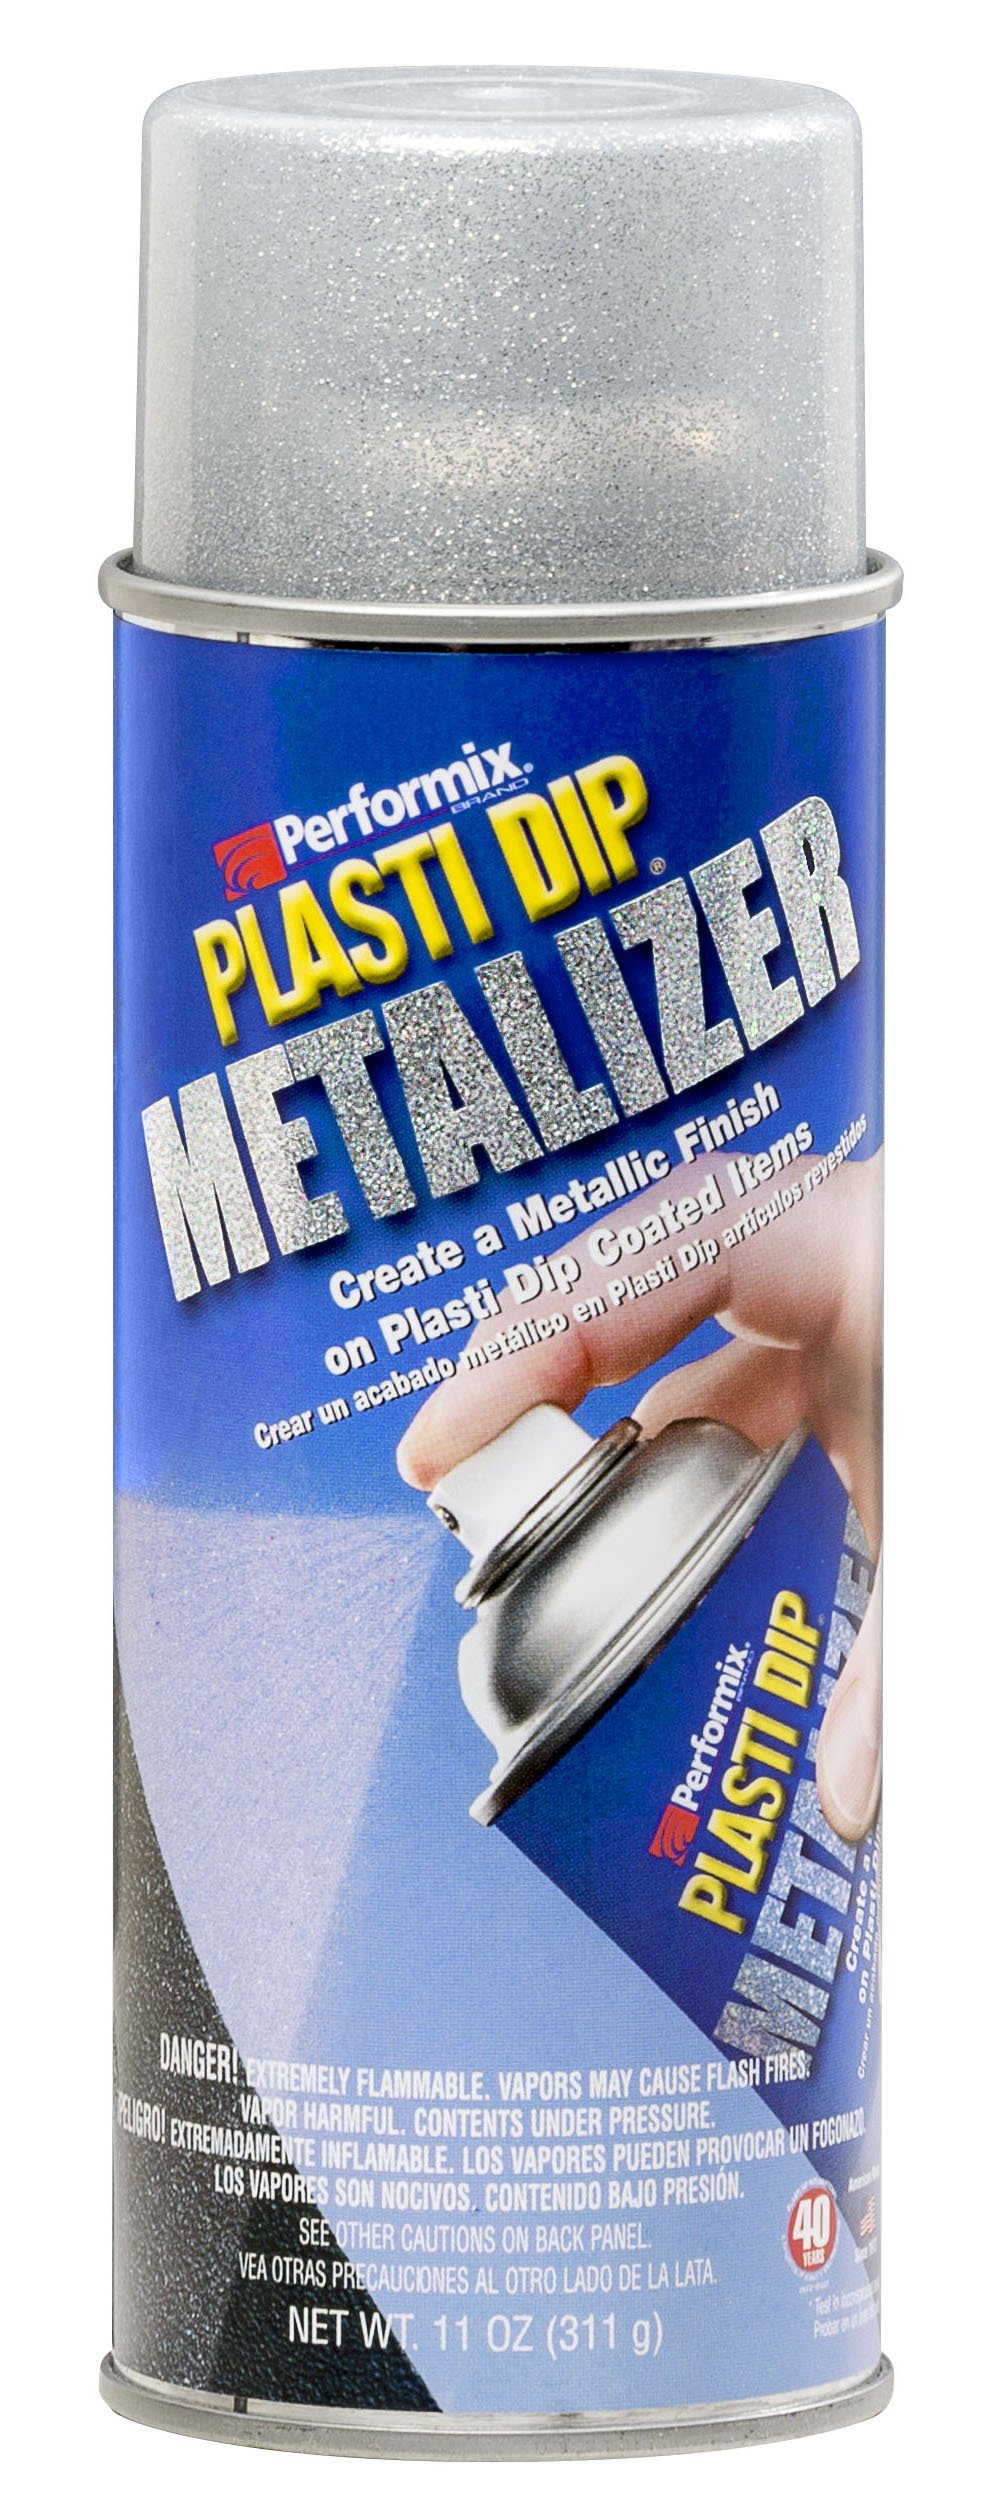 Plasti Dip 11247-6 Bright Aluminum Metalizer, 11. Fluid_Ounces by Plasti Dip